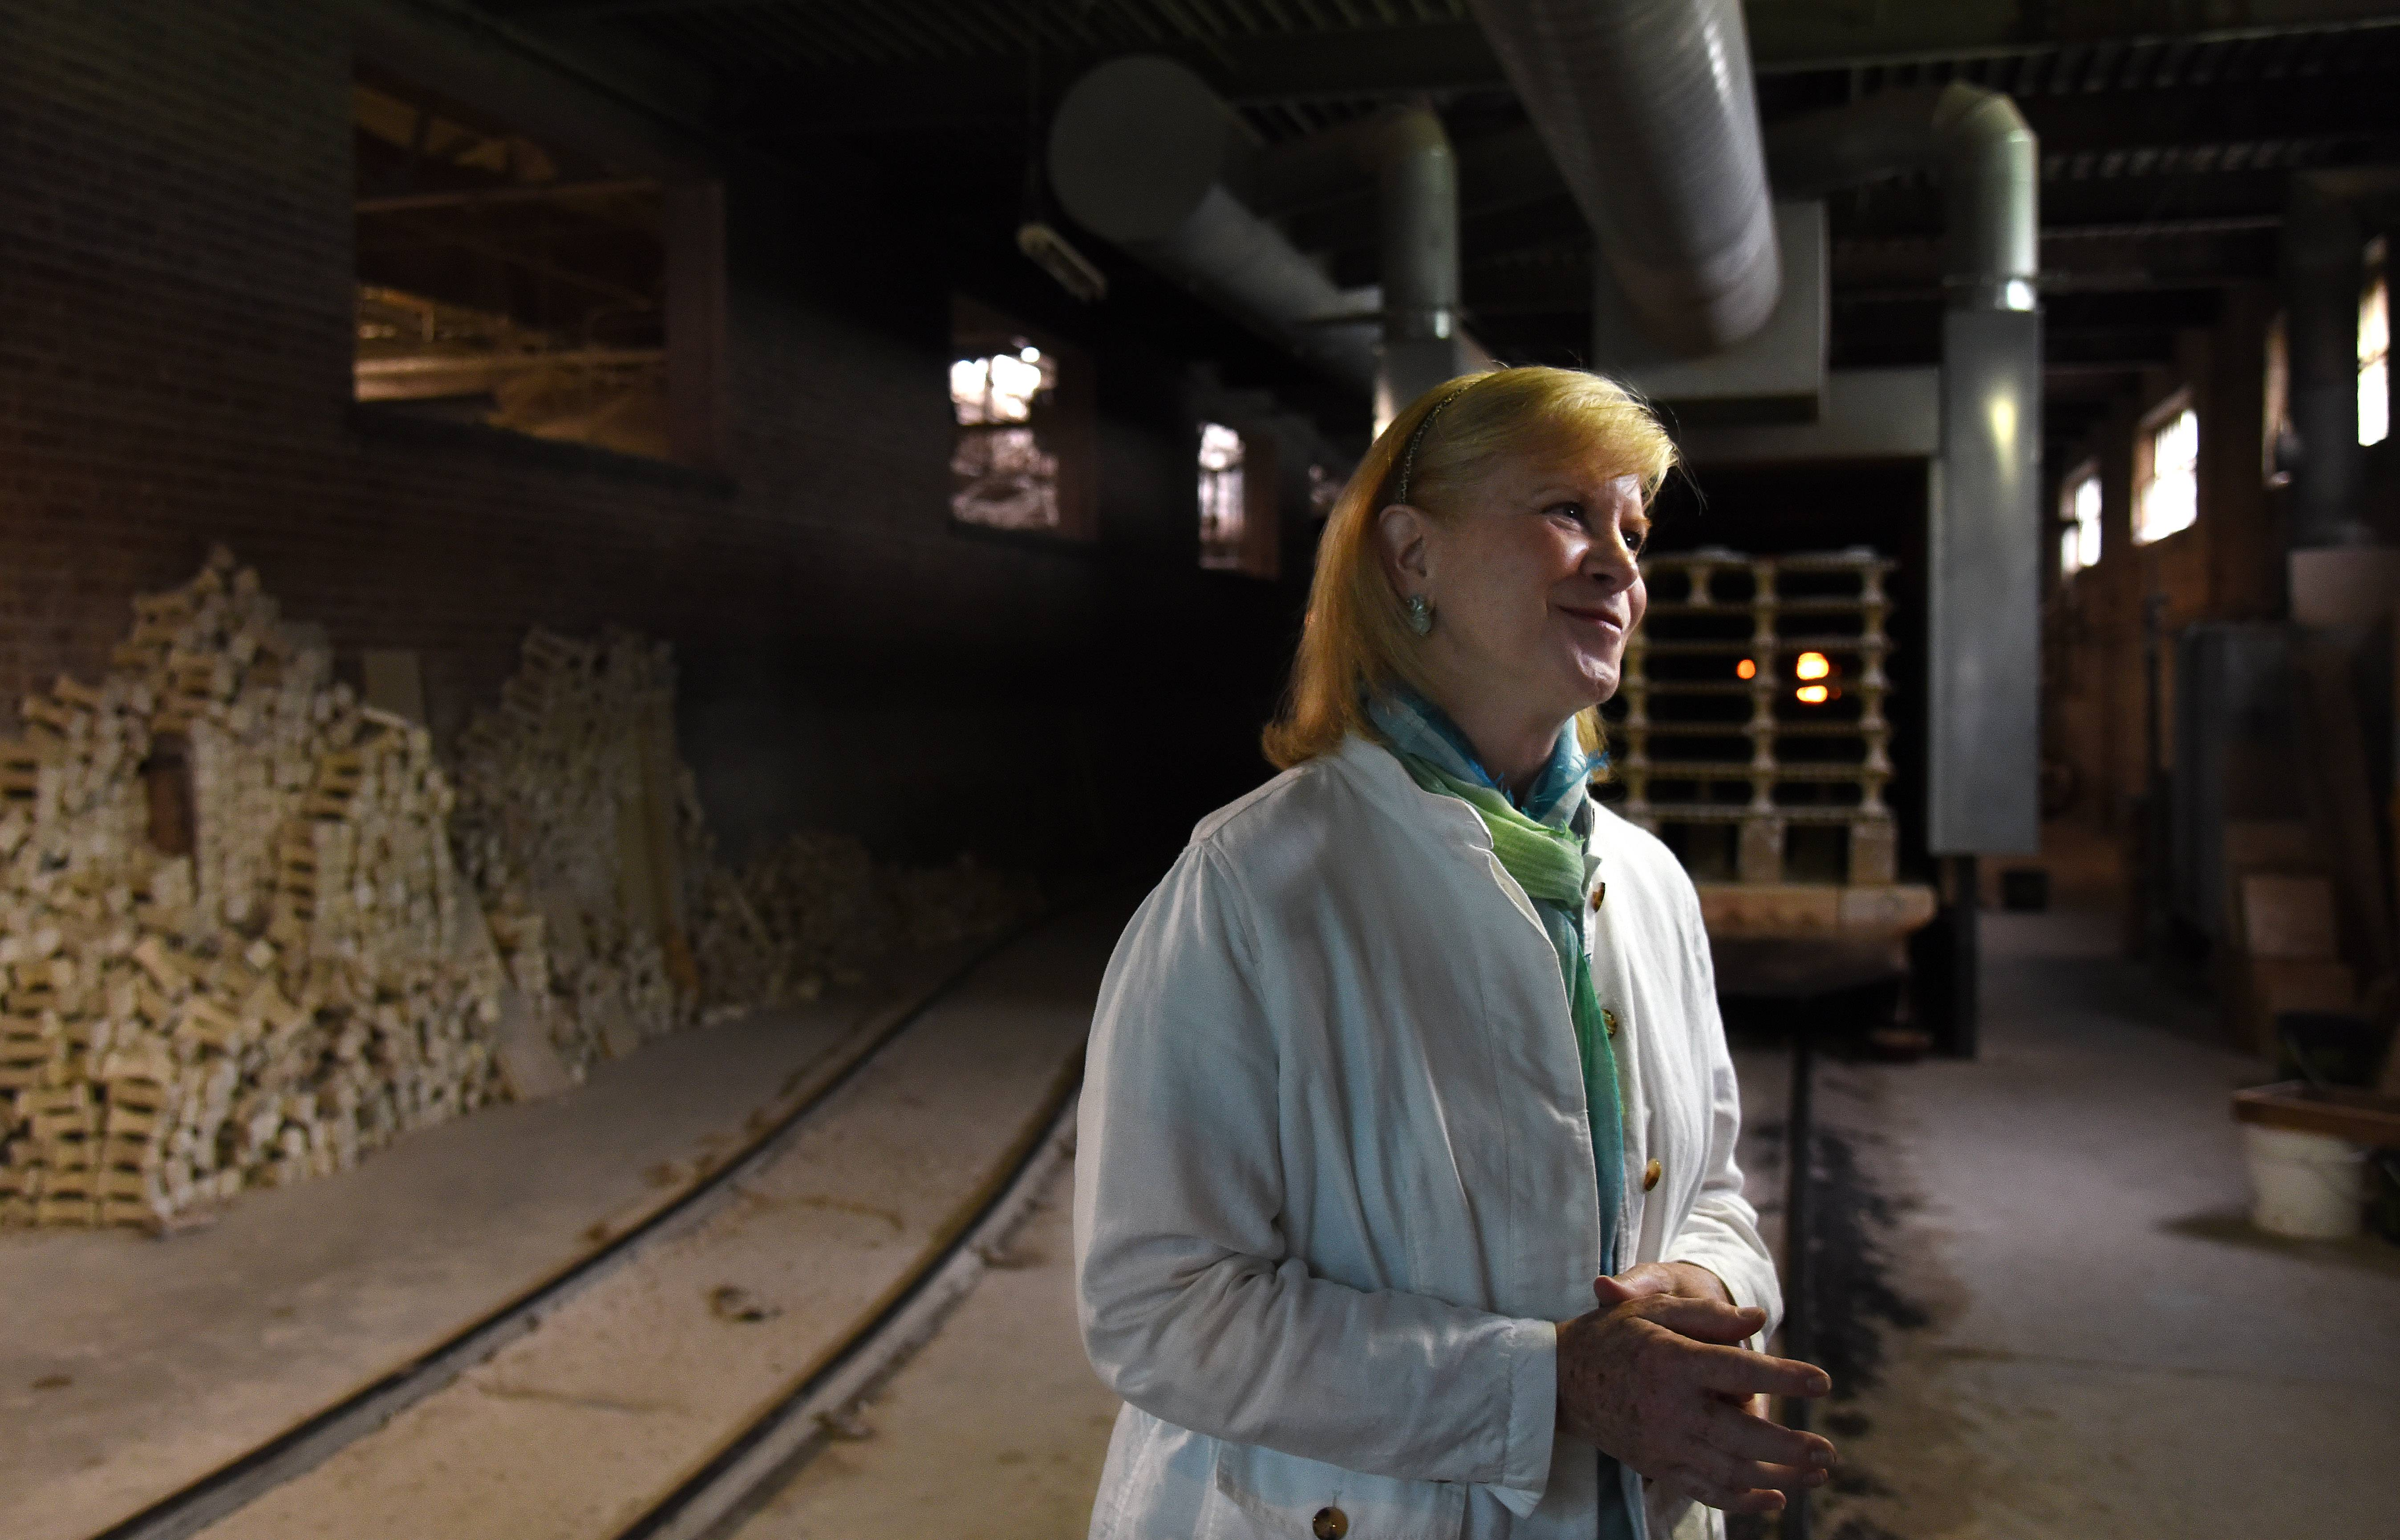 Lexy Haeger Estes stands near the kiln area at Haeger Potteries in East Dundee weeks before the factory closed its doors for good. The company, which has been in her family four generations, ceased operations at the end of June.